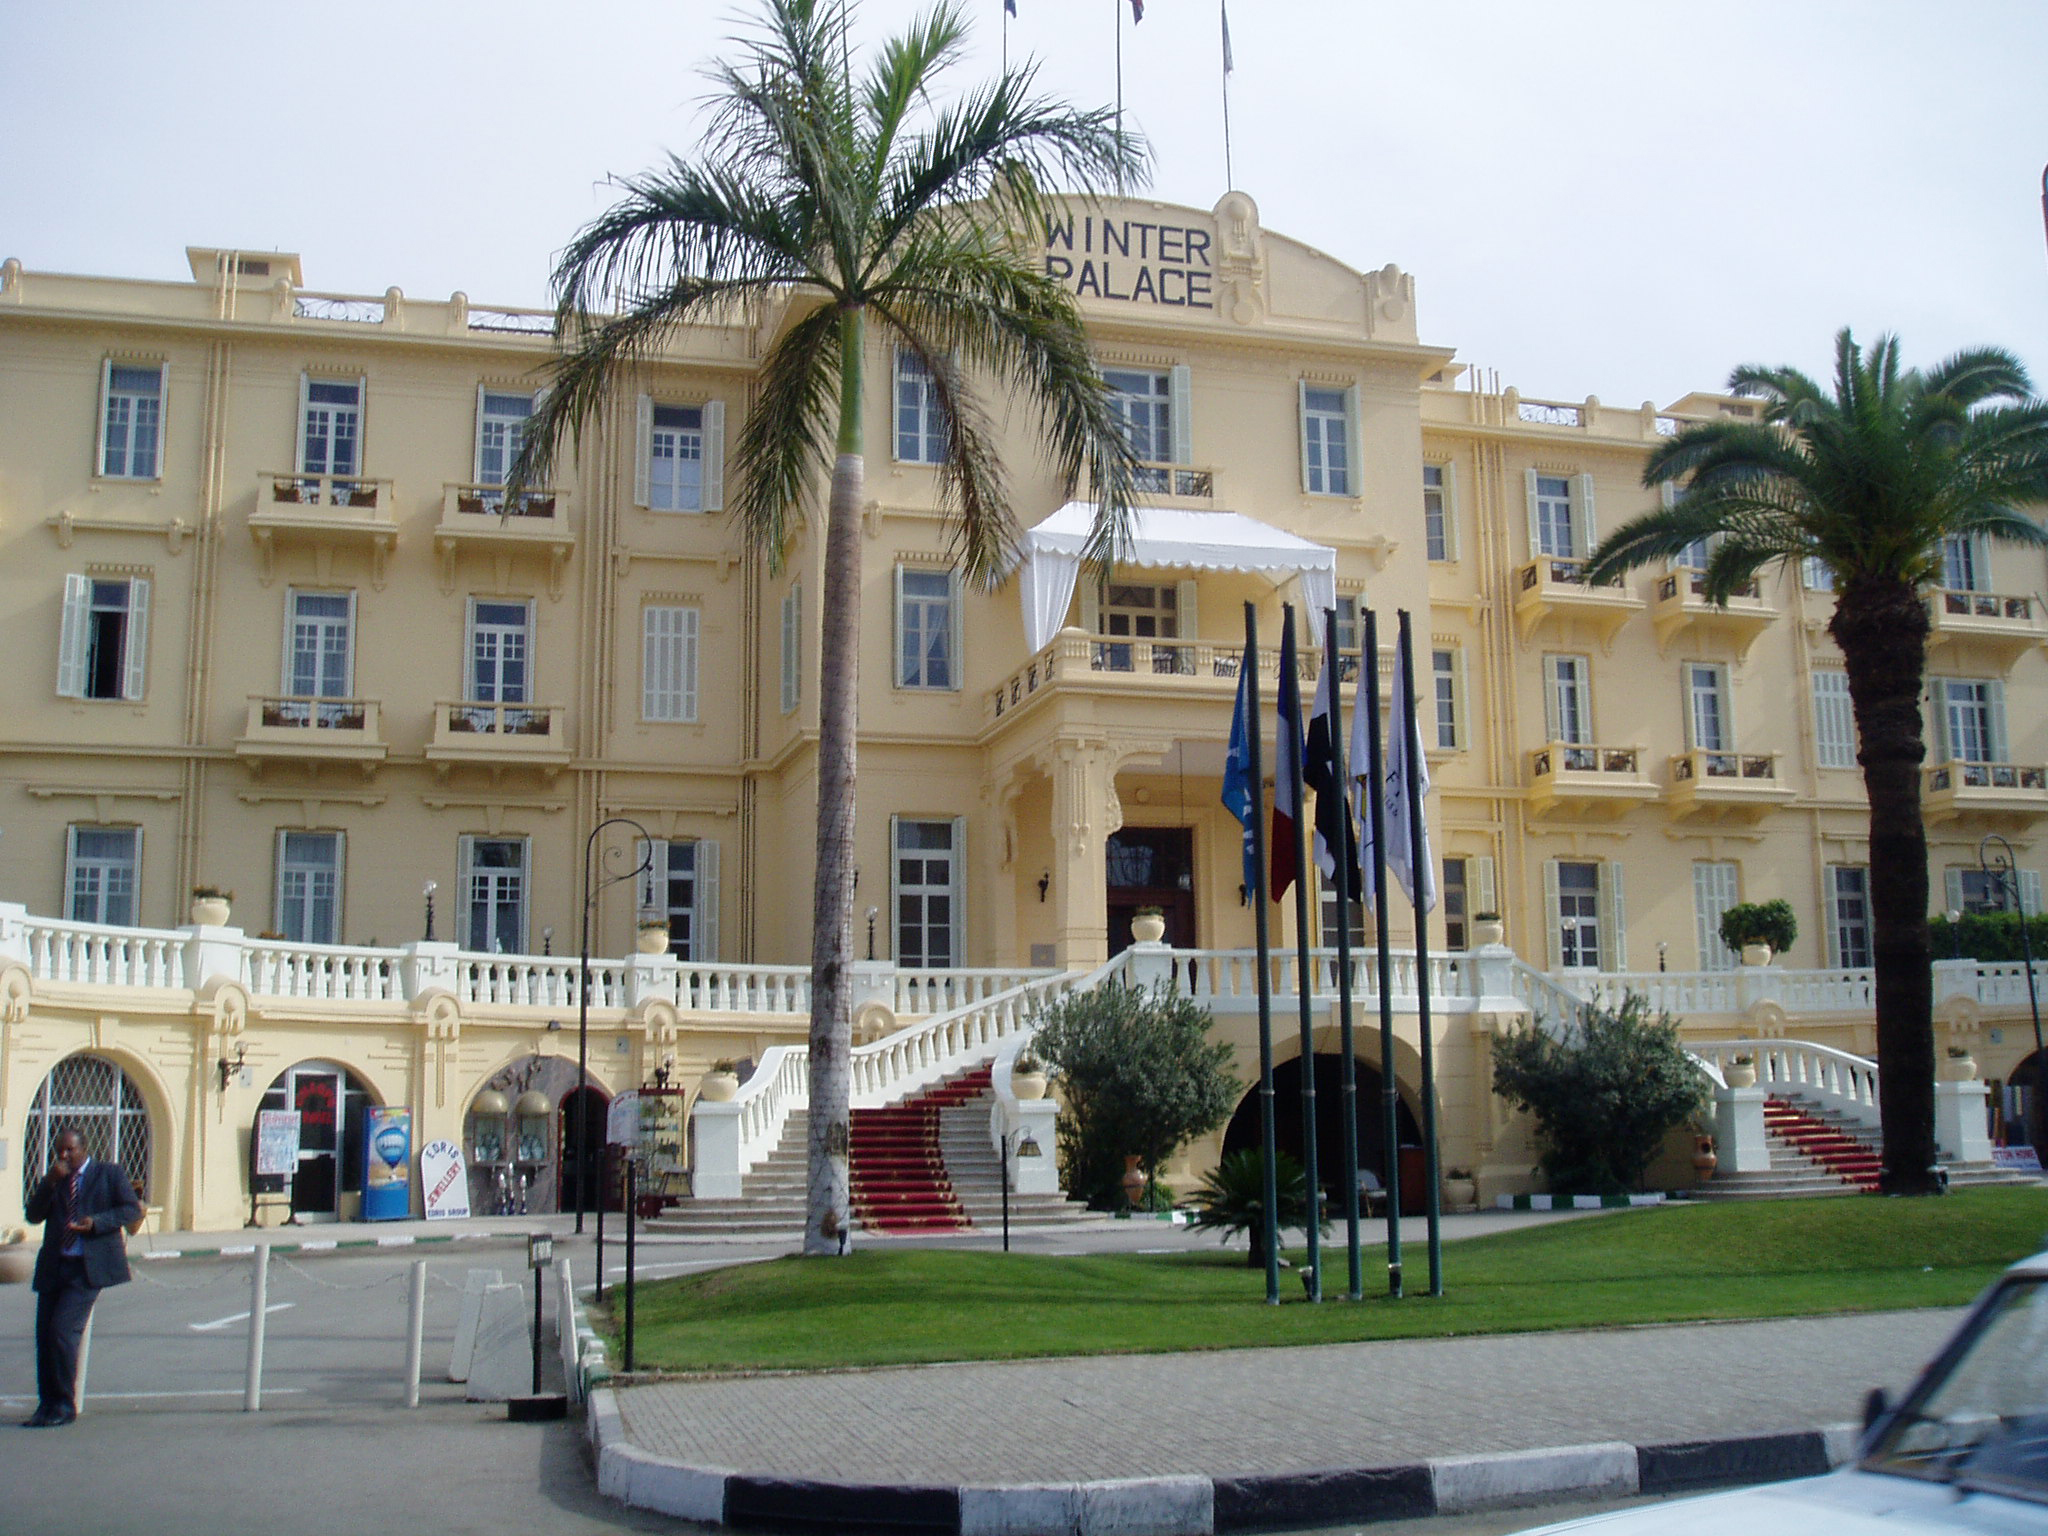 Winter Palace Hotel Luxor